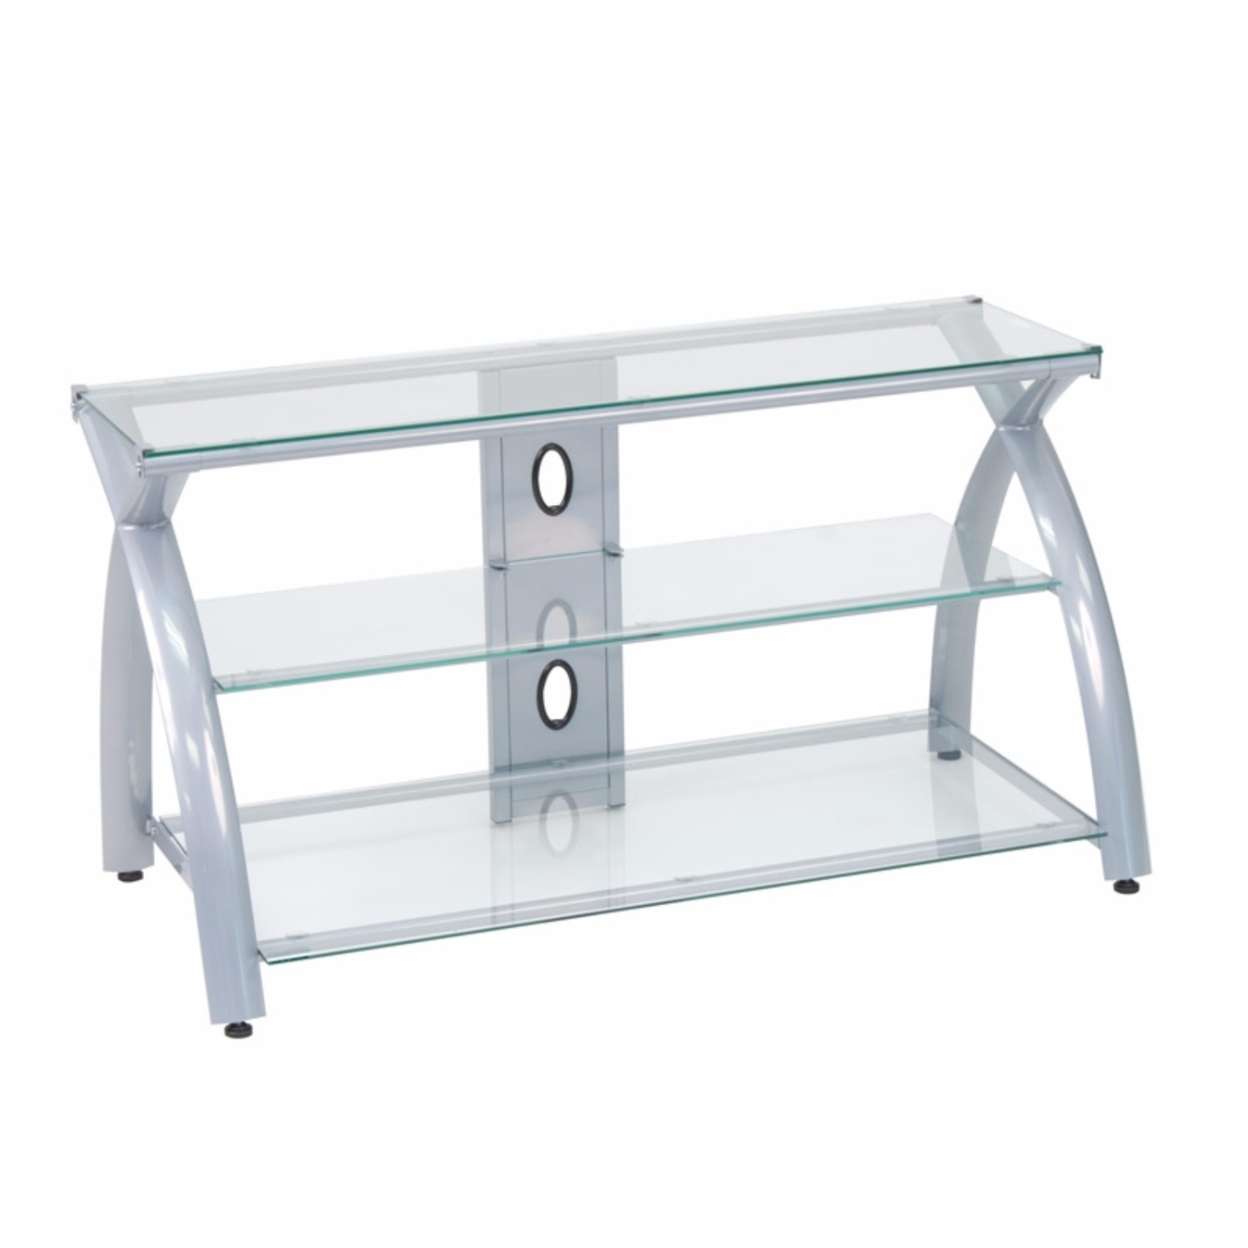 Offex Home Office Futura TV Stand Glass - Silver/Clear